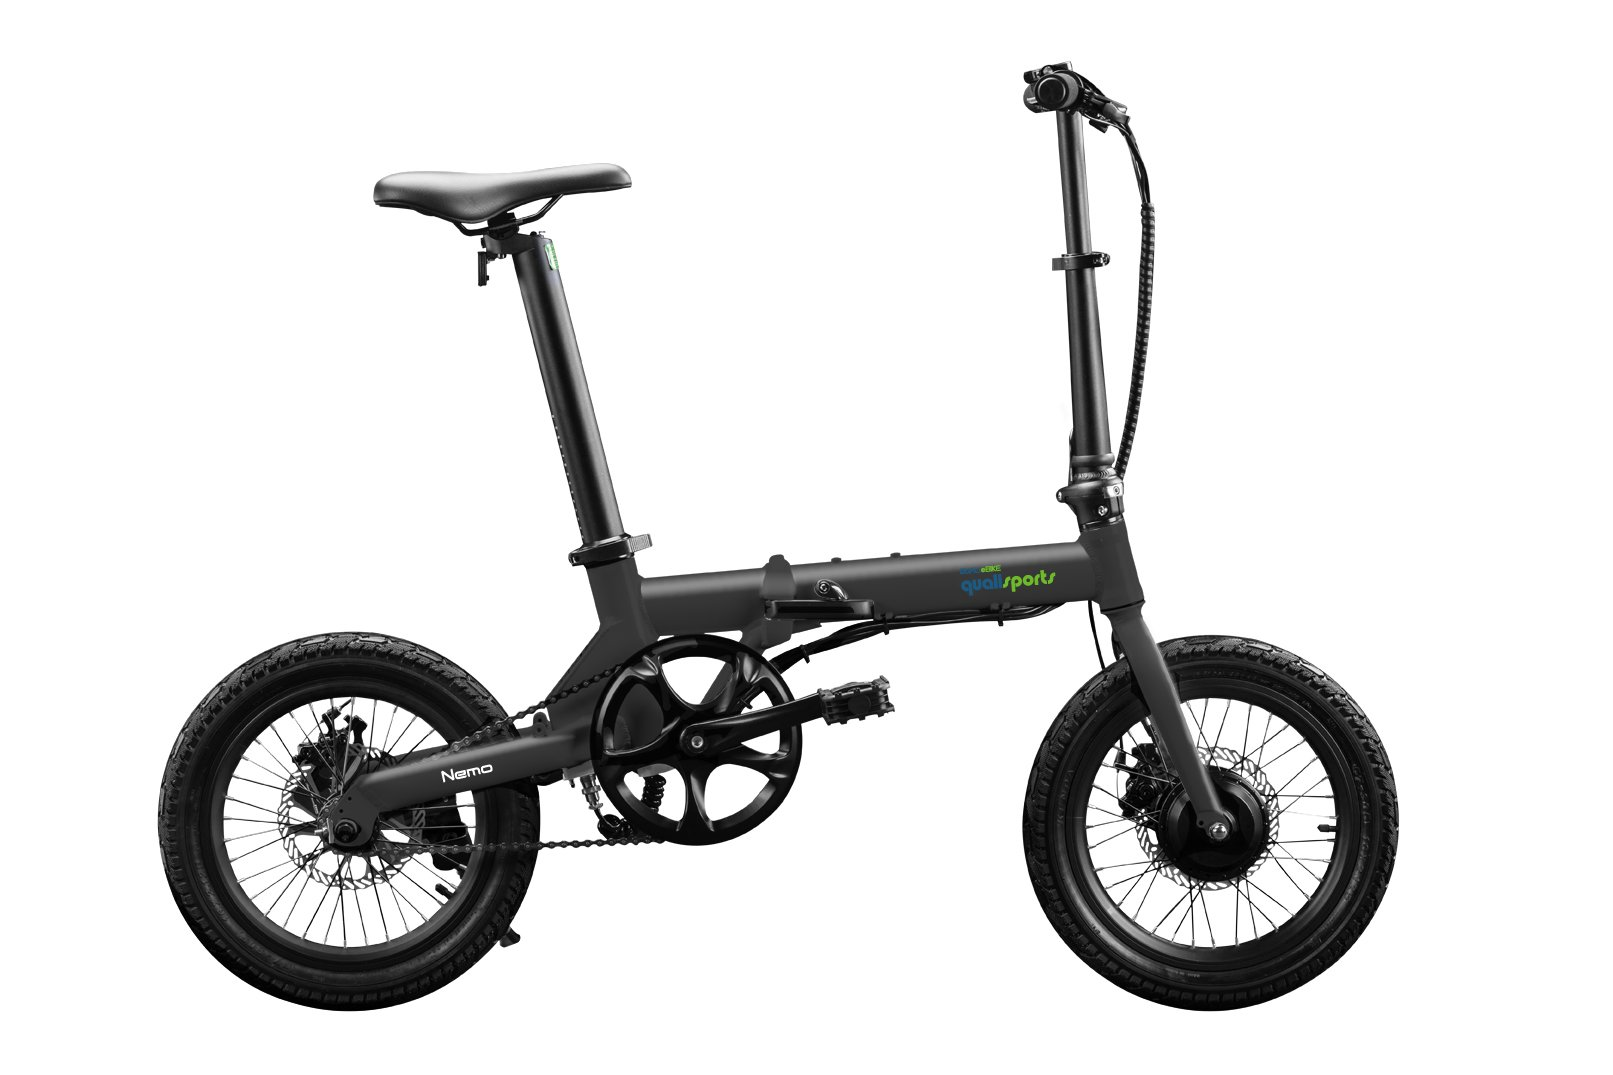 "Qualisports Volador-20""TIRE Folding Electric Bike Black $1099   Qualisports crafted the ""Volador"" after years of feedback from our NEMO customers.  The Volador is our 20"" Electric-bike, which weights only 38.5lbs. It effortlessly folds down to 32.68"" x 15.75″ x 26.38″ compact size. It features 20 x 1.95"" tire, and a Shimano 7-speed mechanical gear shifting in addition to an electronic 5 level shifting capability.  As with our ""Nemo"" Bikes, Quali-bikers can easily store the Volador in tight out of the way places in apartments, closets, under your work desk, in an RV, a boat or even on your own plane. The Volador features an easy to read on-board multifunctional LCD display. It will comfortably accommodate a cyclist from 5′ to 6'3″ tall.  The Volador can be ridden in four different modes:  As a normal bike, (PAS) Pedal Assist mode, Cruise control mode, or enjoy an effortless riding experience with a simple press of a trigger throttle to help you get over a hill.  The Volador has an efficient and strong 350W brushless geared motor which will assist you to overcome an 18-degree climb effortlessly. Our patented stylish and stealthy seat post design is practical and hides our batteries (Samsung 252WH). The Volador will give the Quali-biker's 30miles range on a single charge."